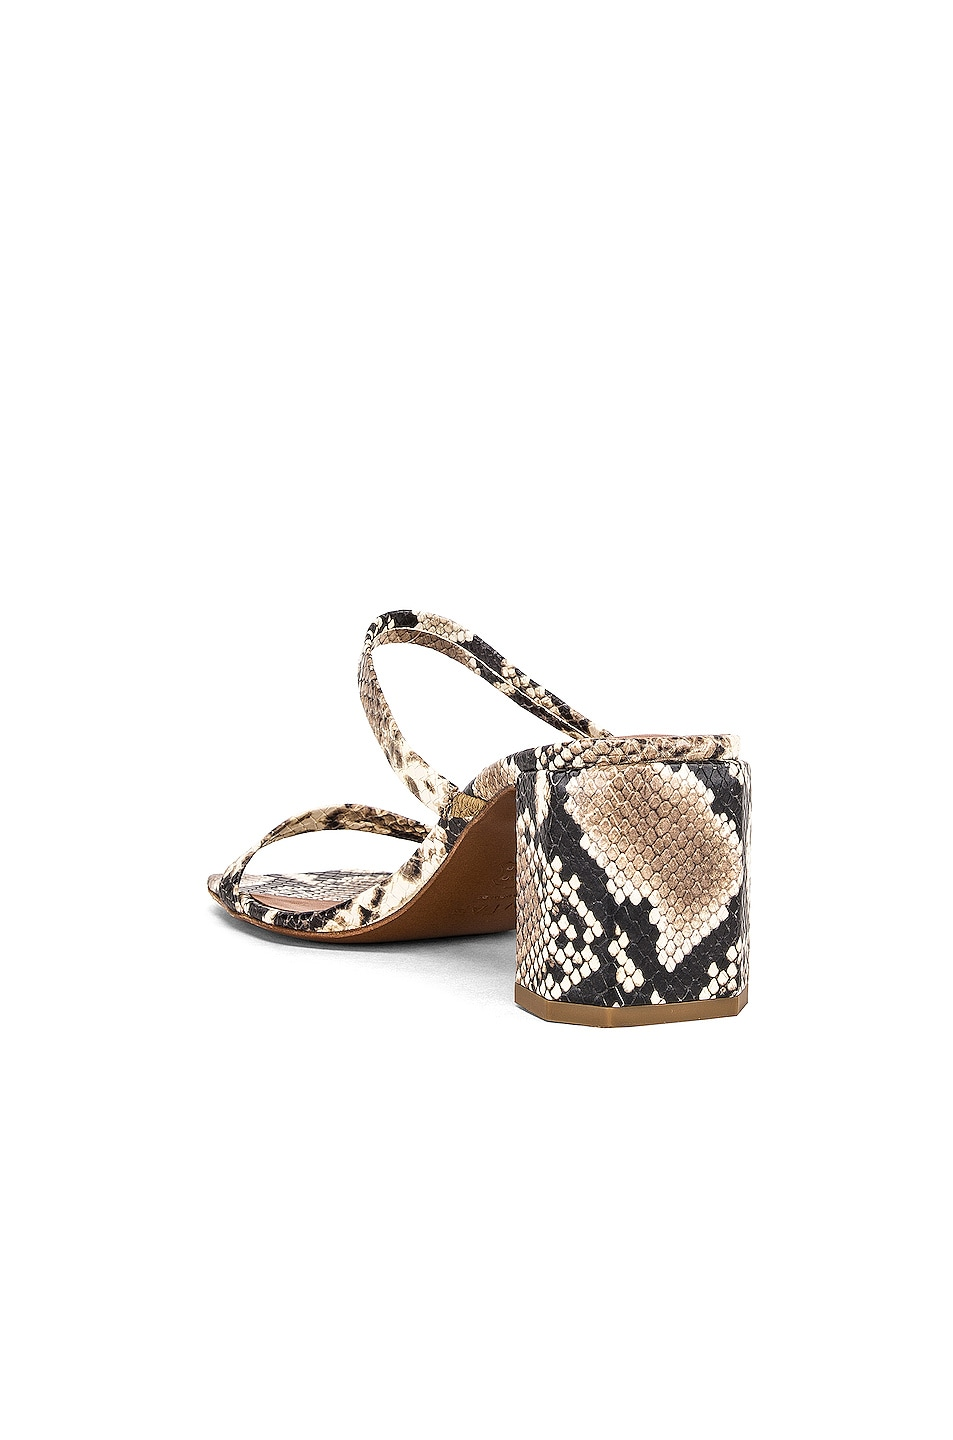 Image 3 of By Far Tanya Sandal in Snake Print Leather